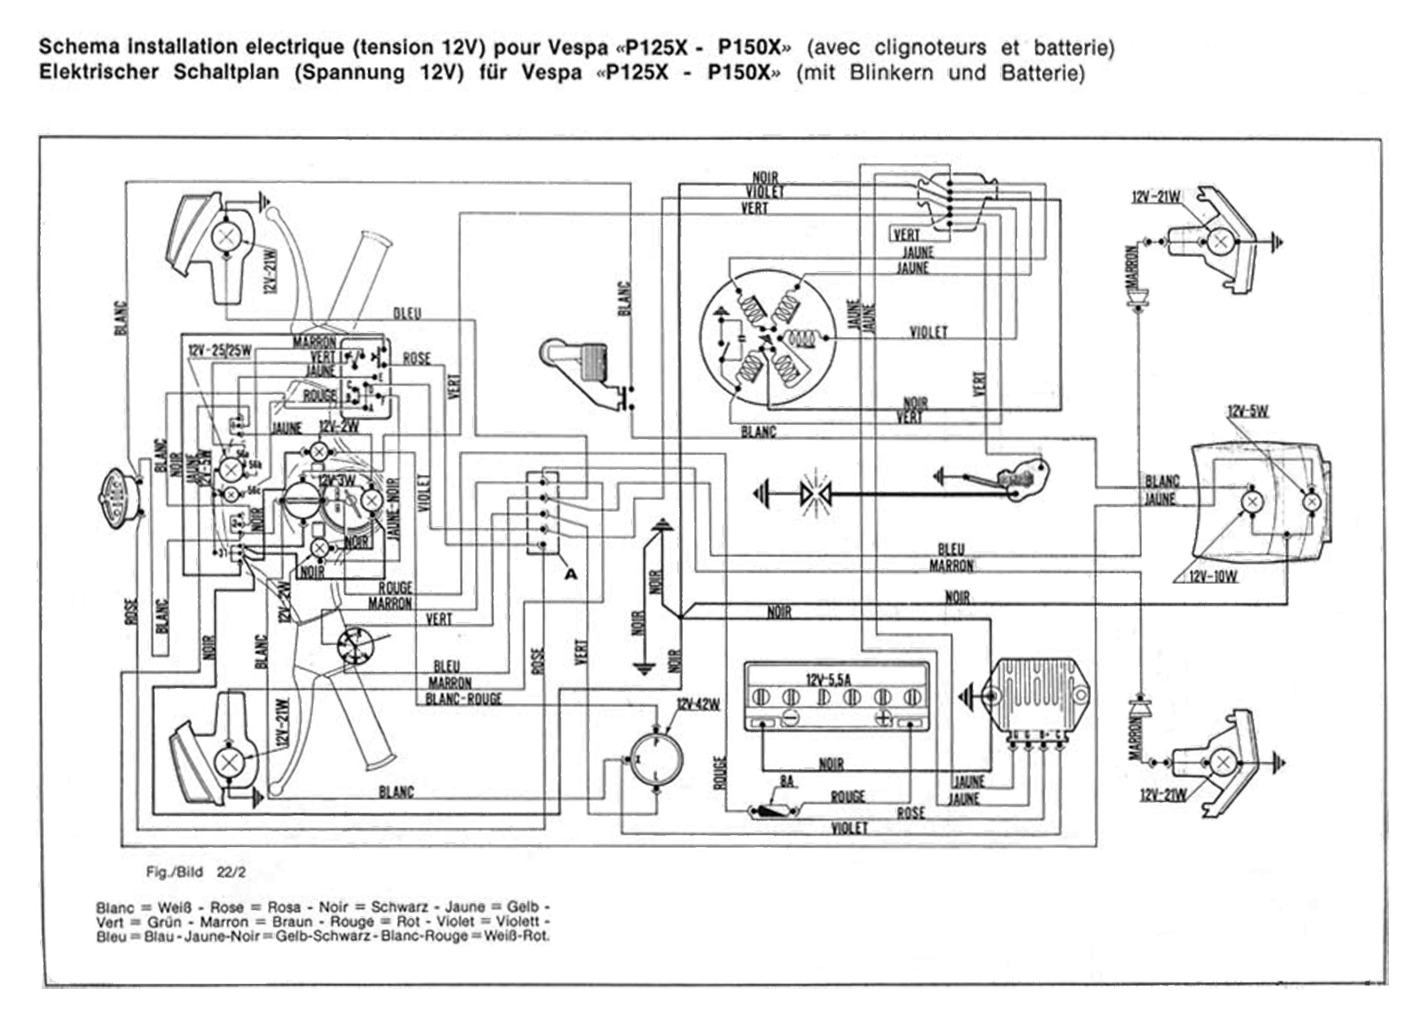 vespa px wiring diagram vespa image wiring diagram vespa px 125 disc wiring diagram vespa auto wiring diagram schematic on vespa px wiring diagram